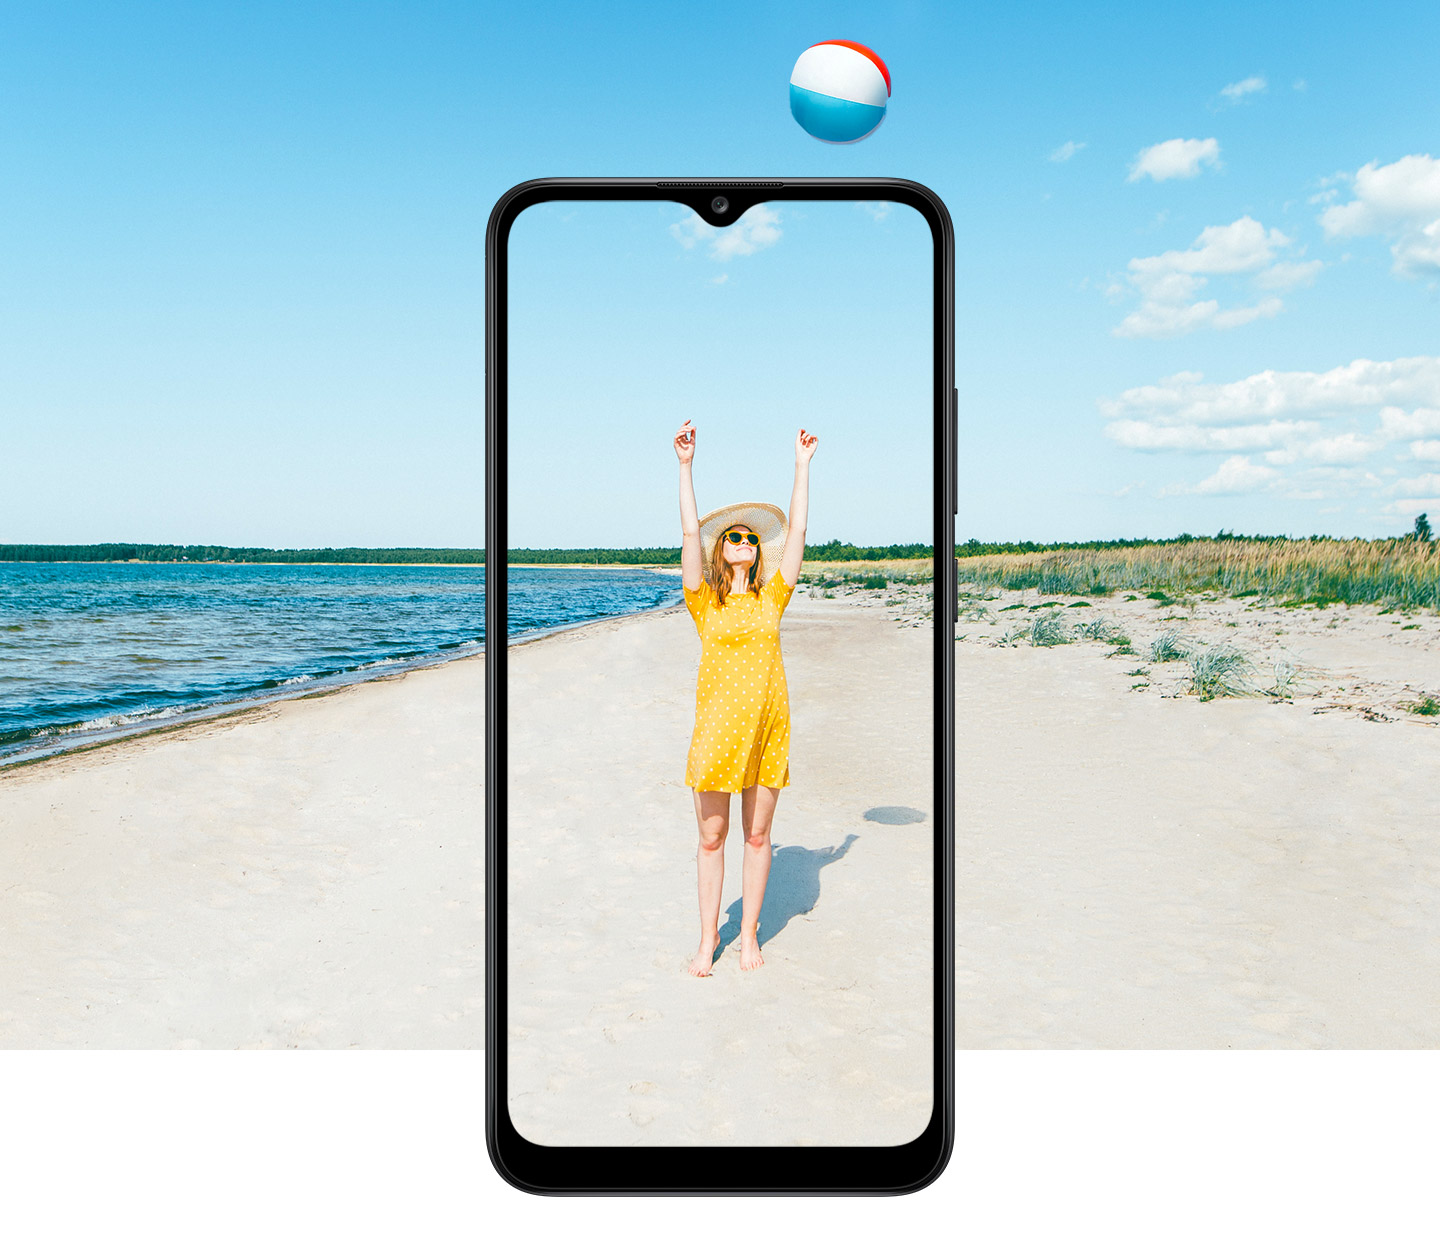 A girl wearing yellow dress, raising her arms captured in A02s display, utilizing 6.5 inch Infinity-V display feature.